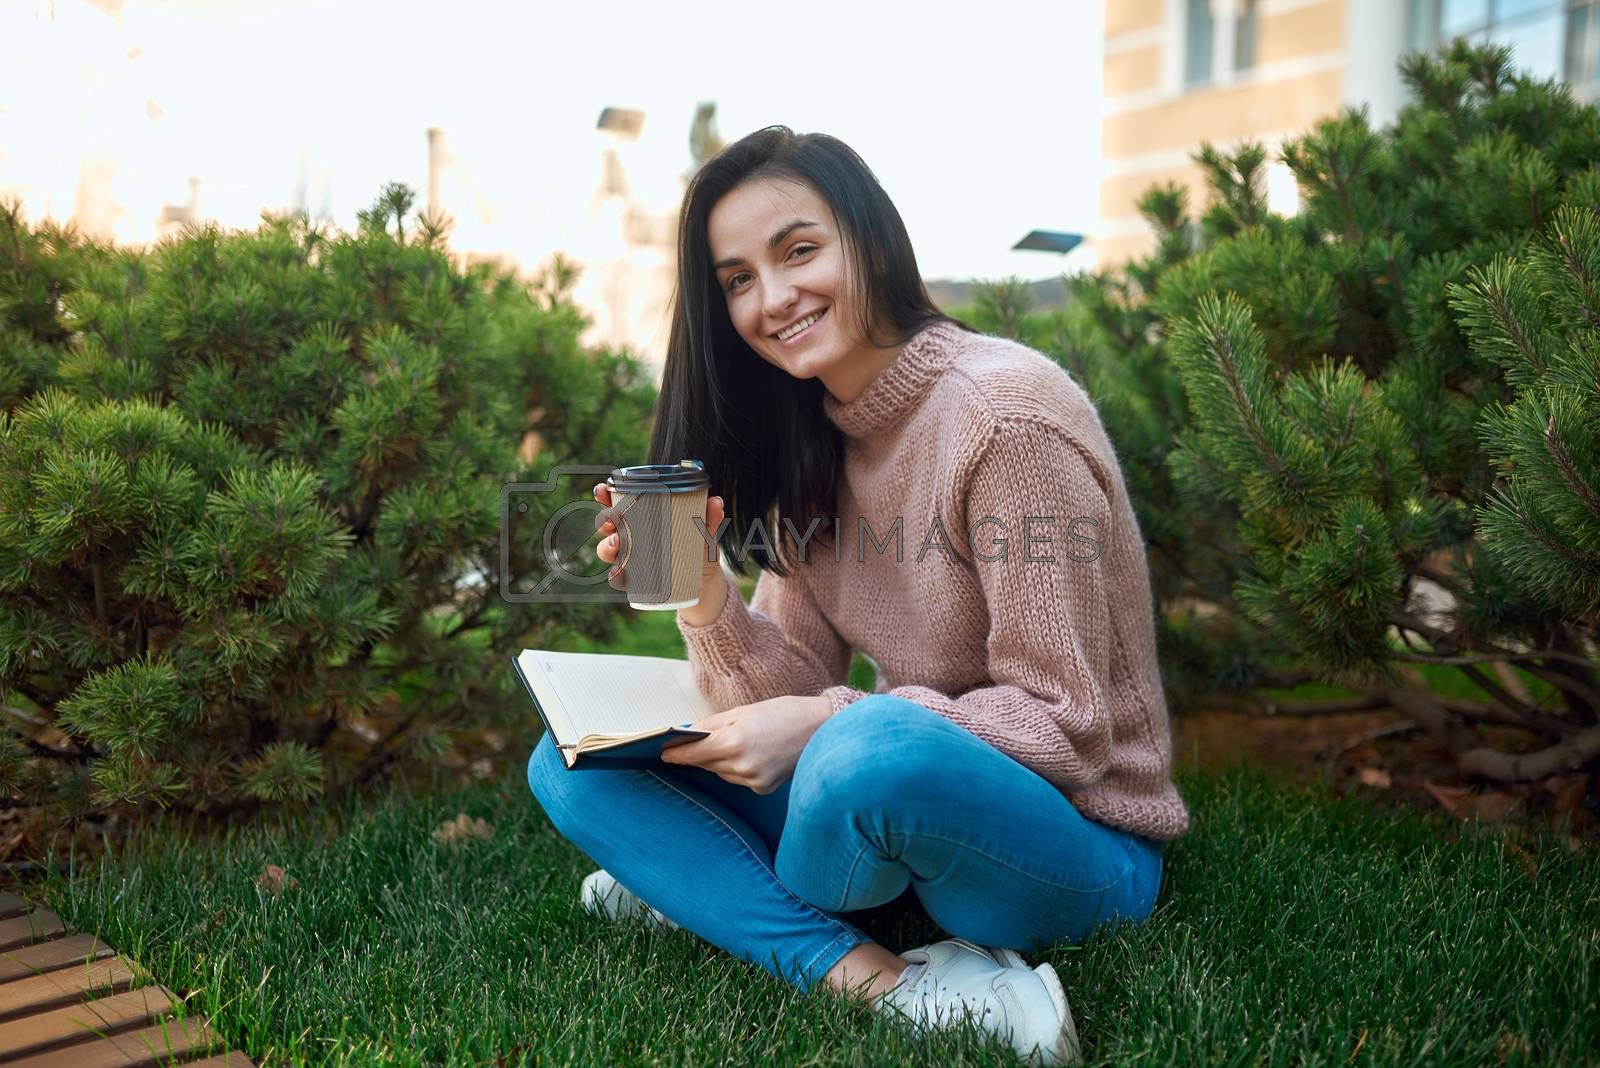 Cheerful young lady with paper glass of coffee in hands holding her memo book on knees while sitting on a cosy green lawn